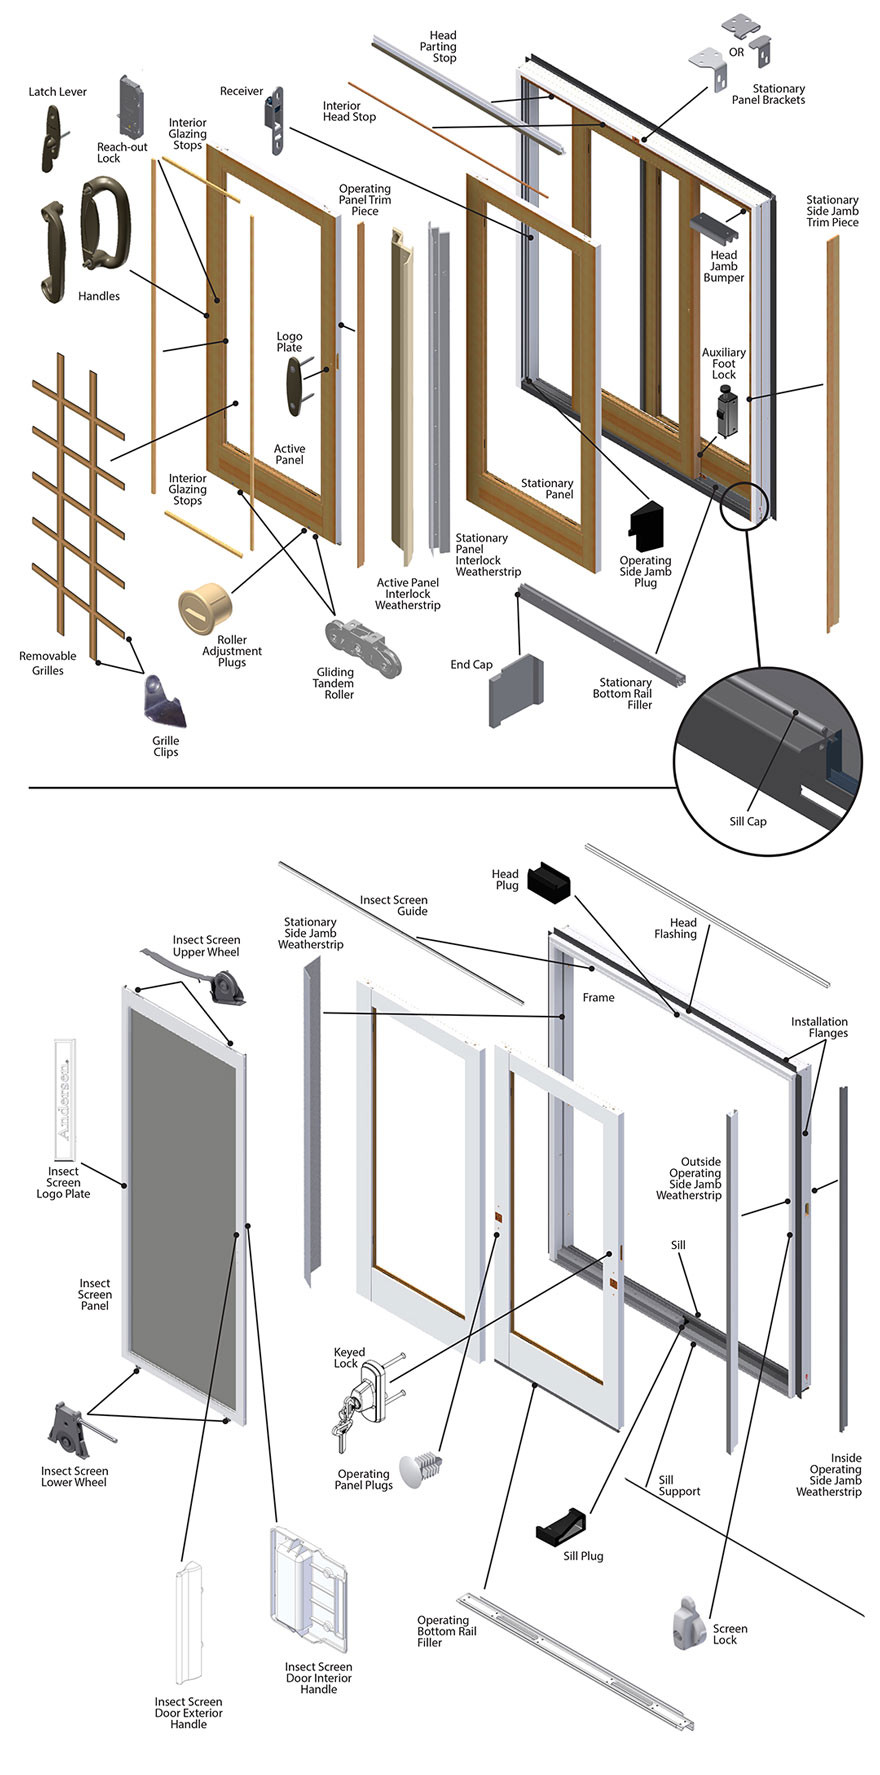 Best ideas about Patio Door Parts . Save or Pin Frenchwood Gliding Patio Door Parts Diagram Now.